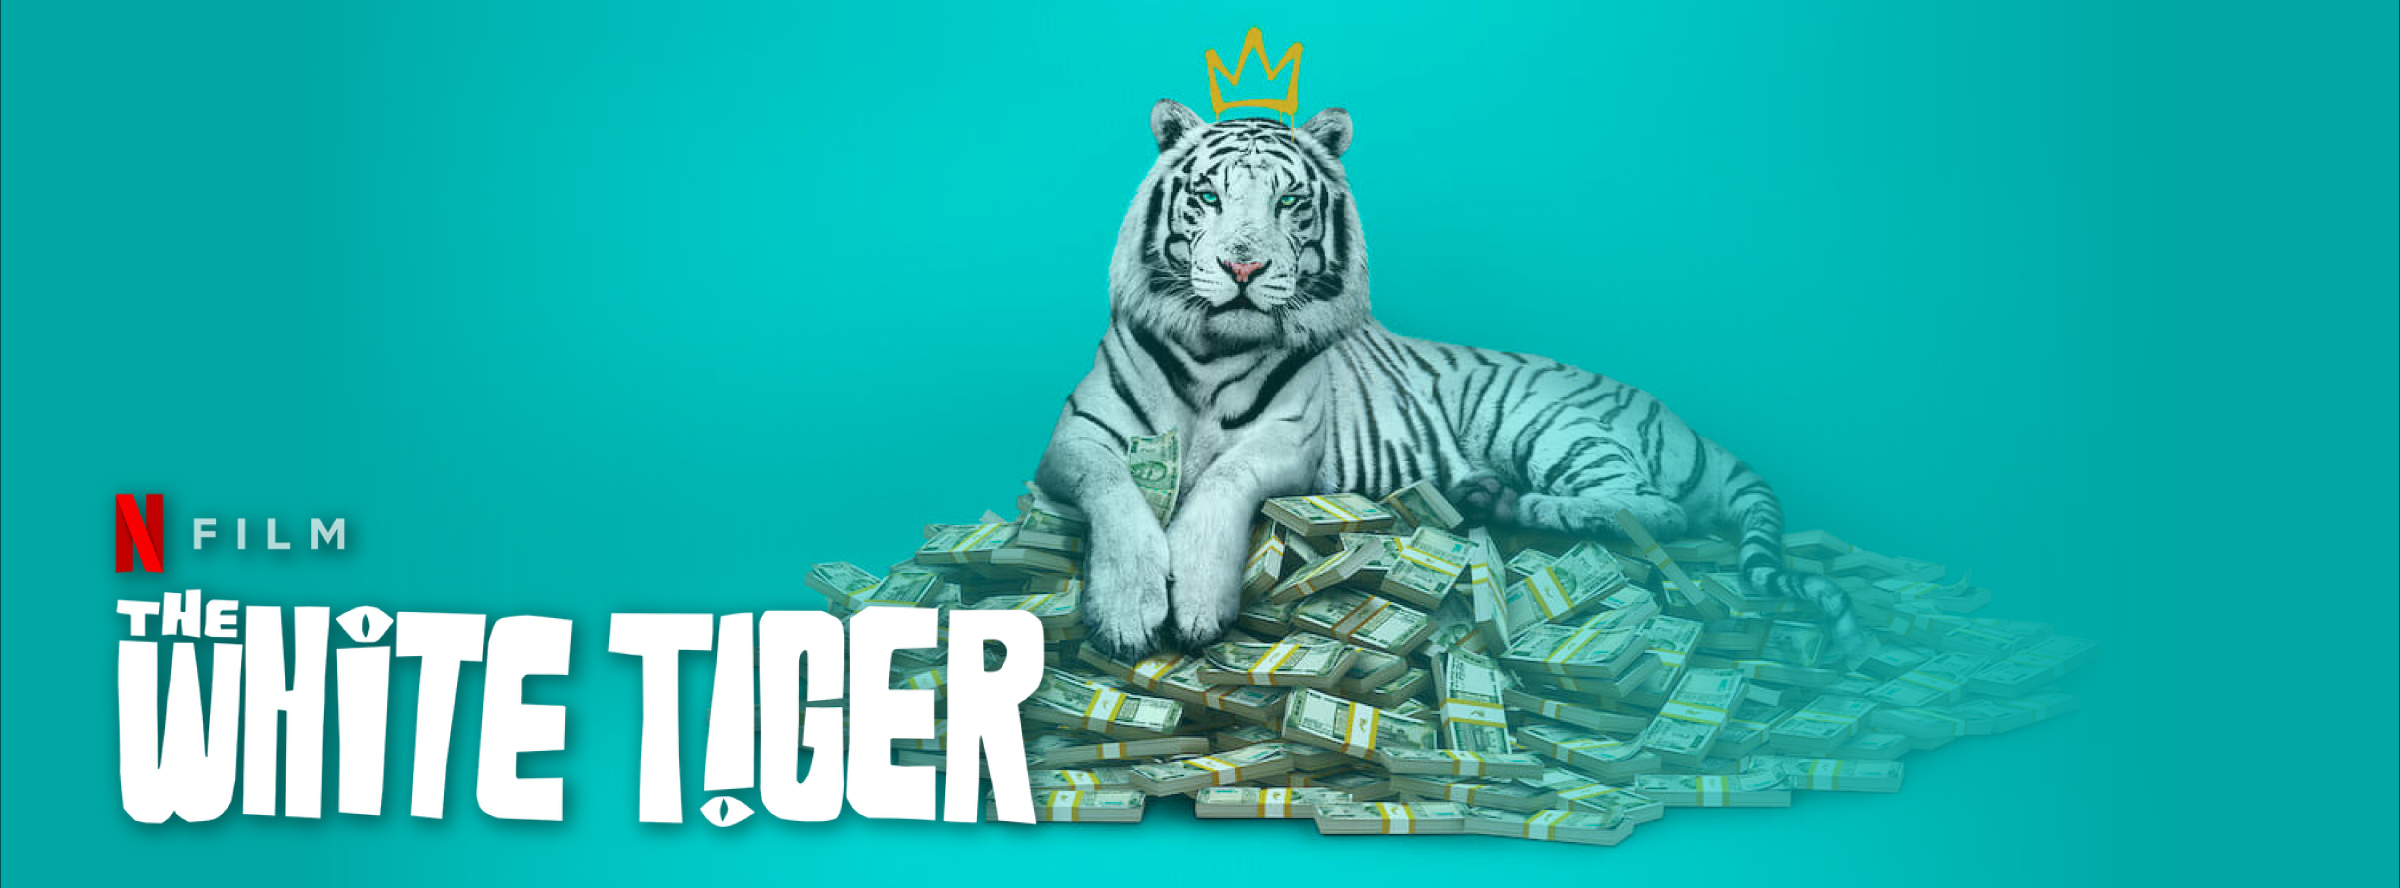 Slider Image for The White Tiger (Hindi)